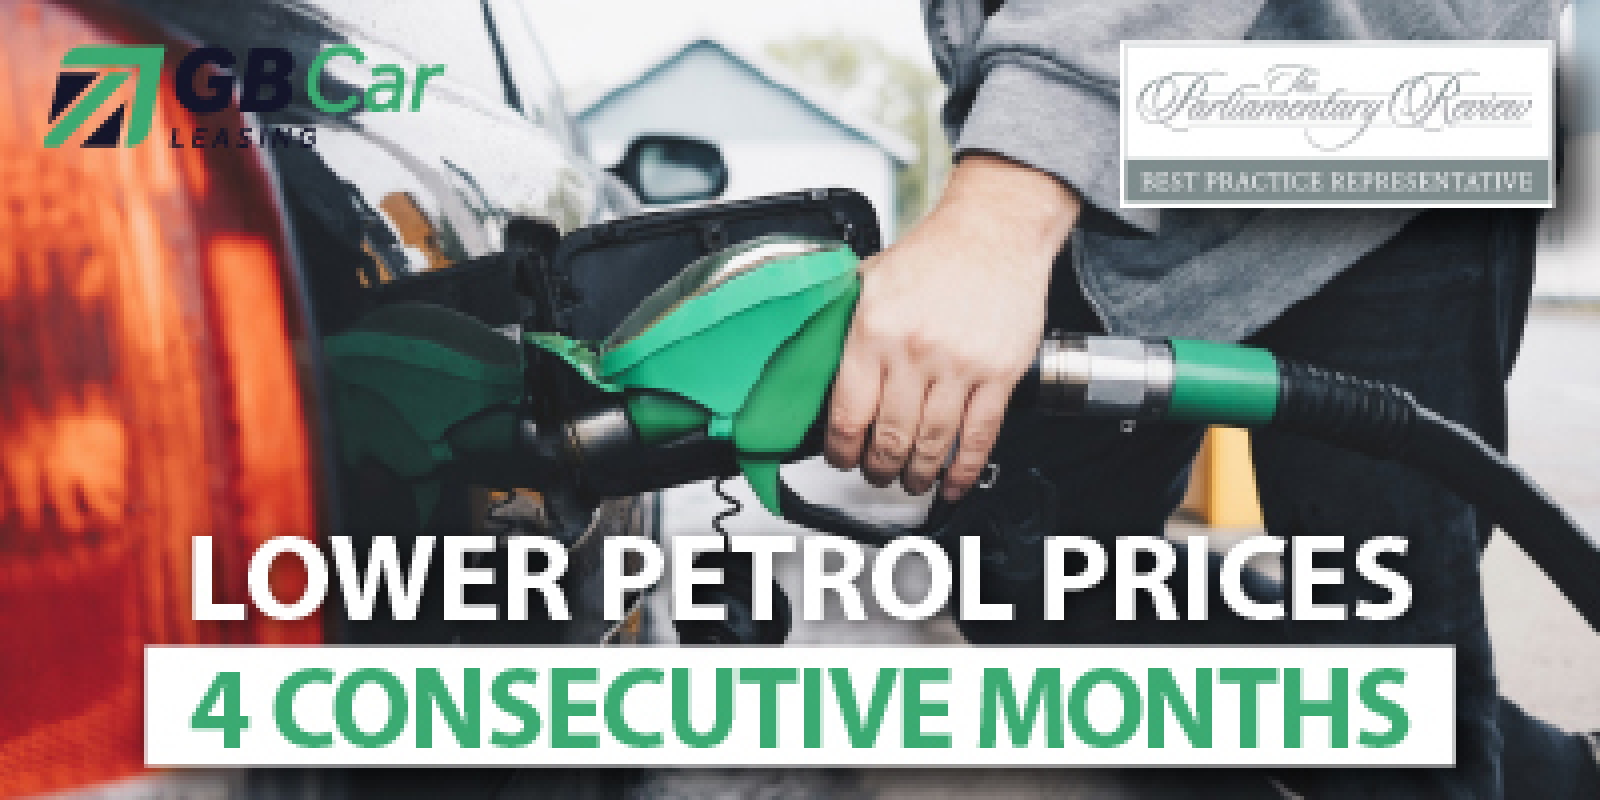 Four months of lower petrol prices